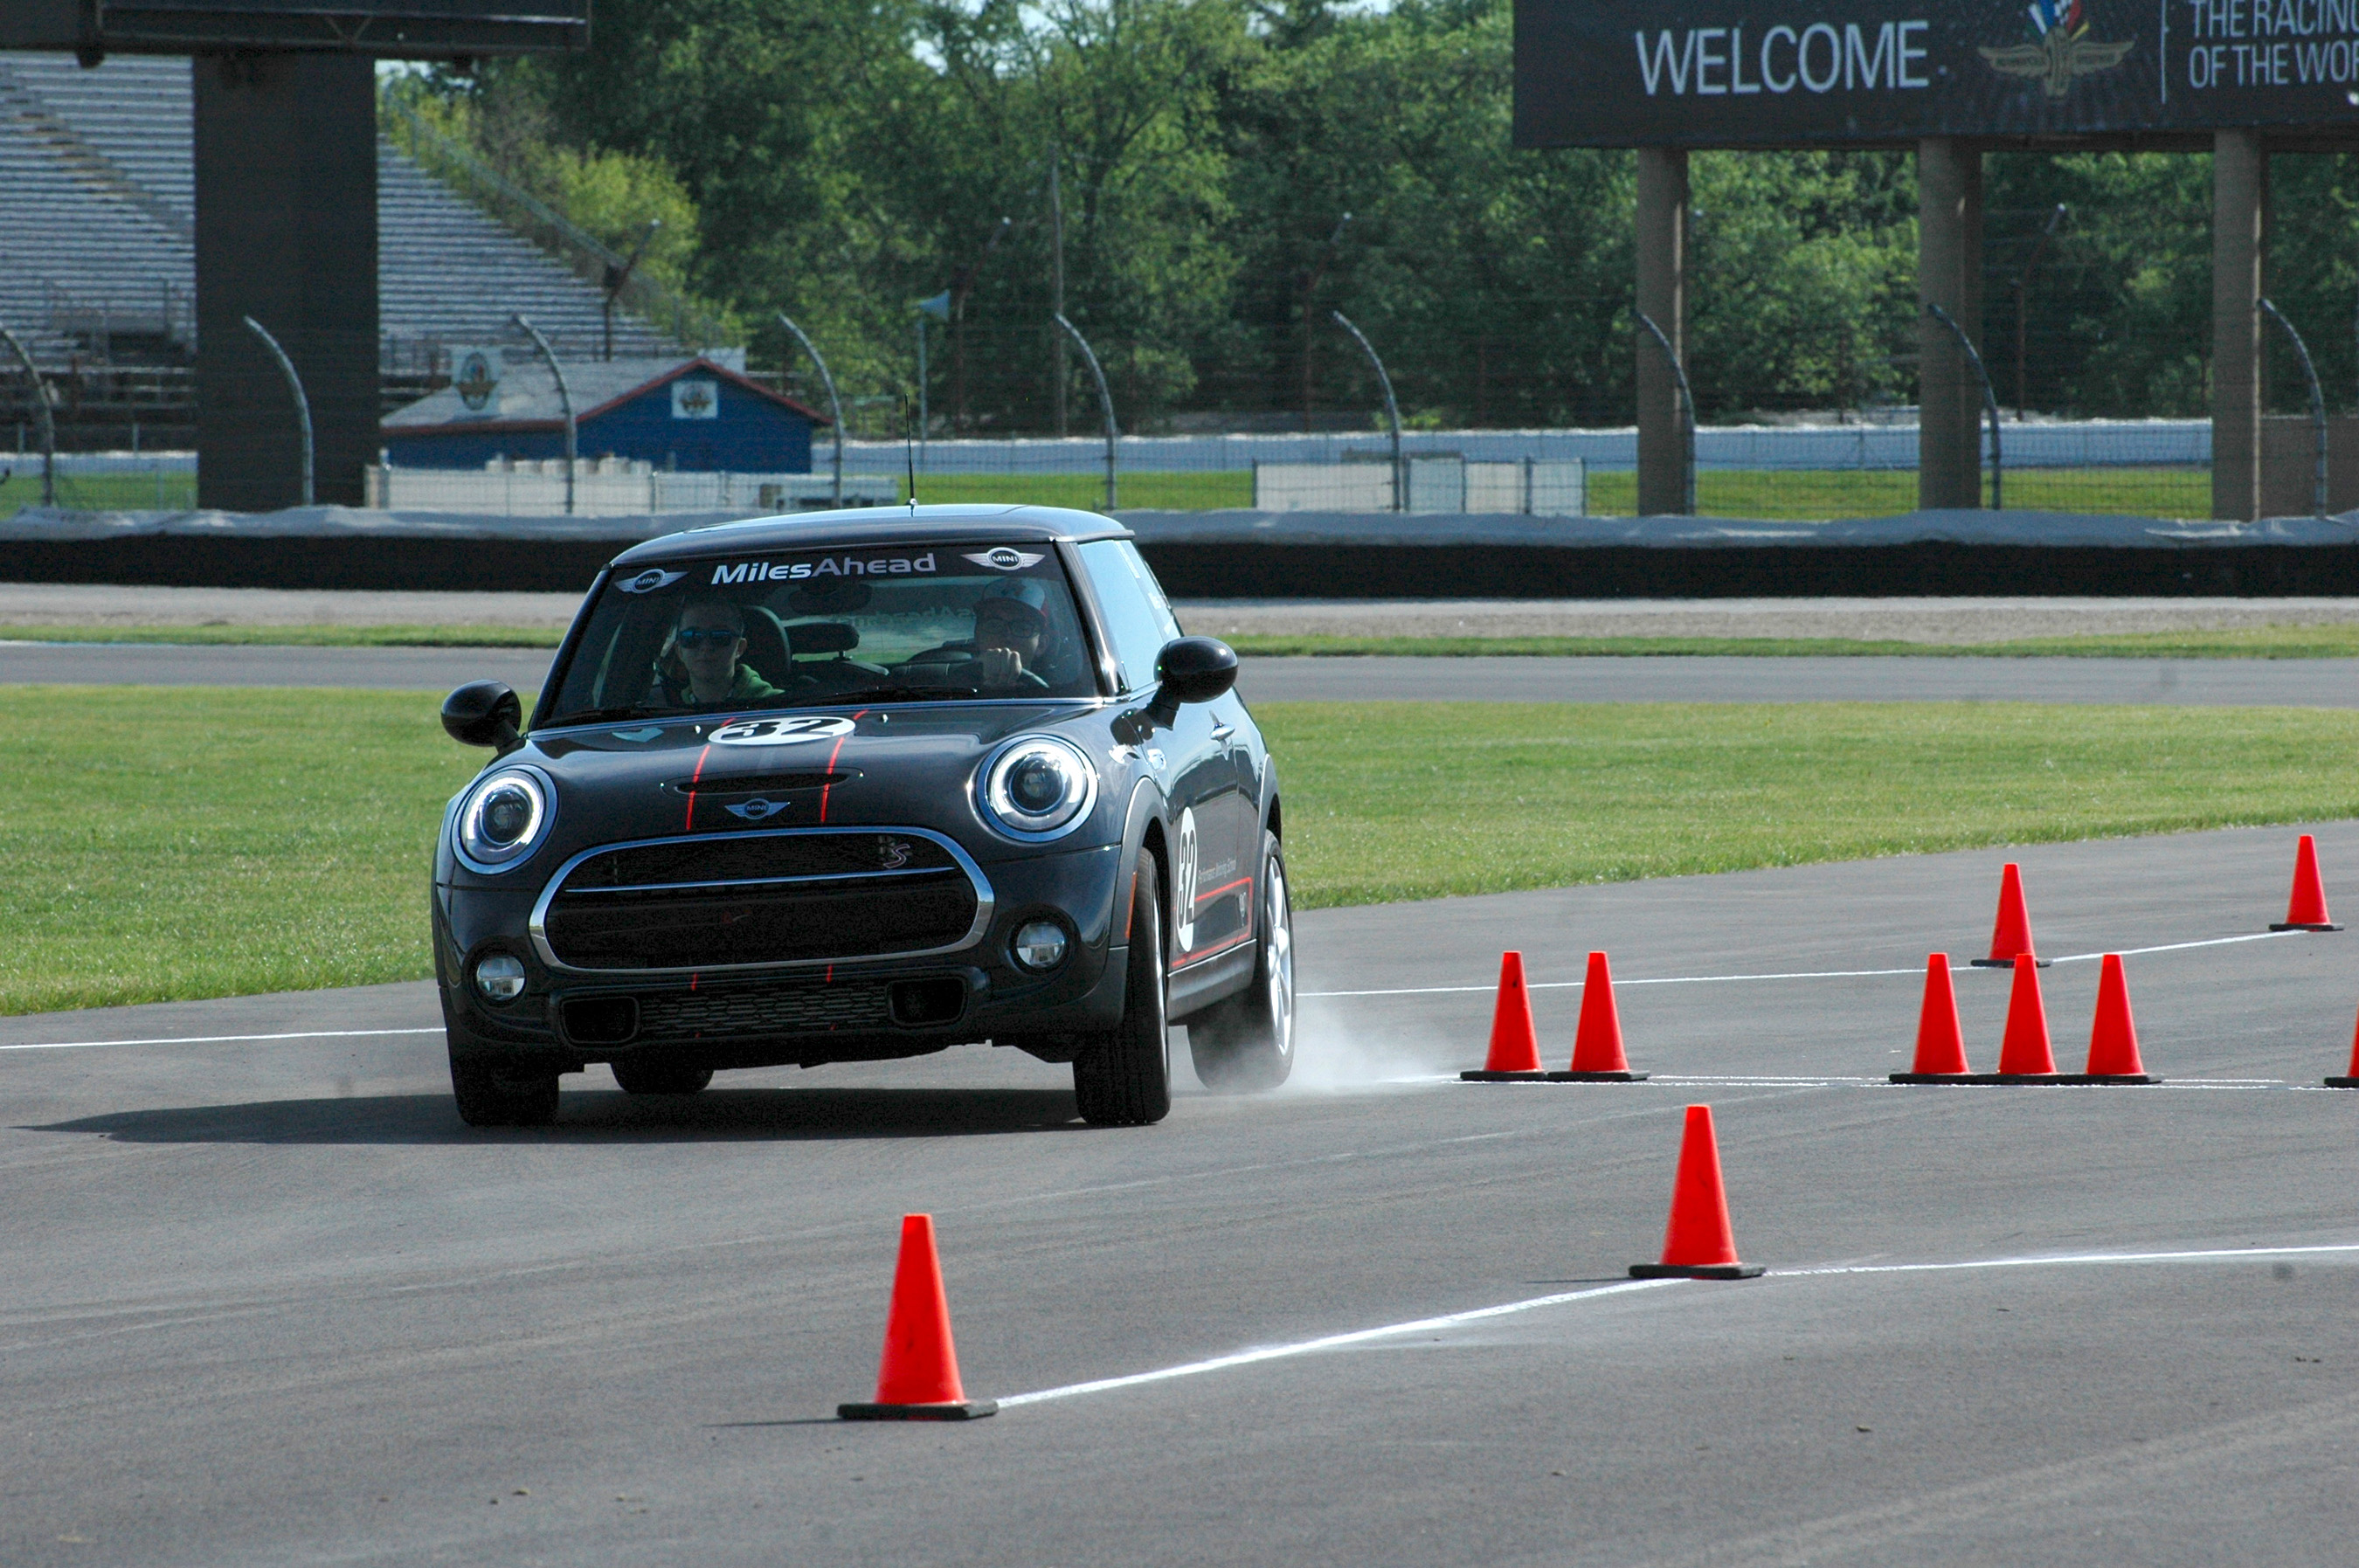 A MINI Hardtop takes tight turns around cones as part of the MINI Teen Motoring School.